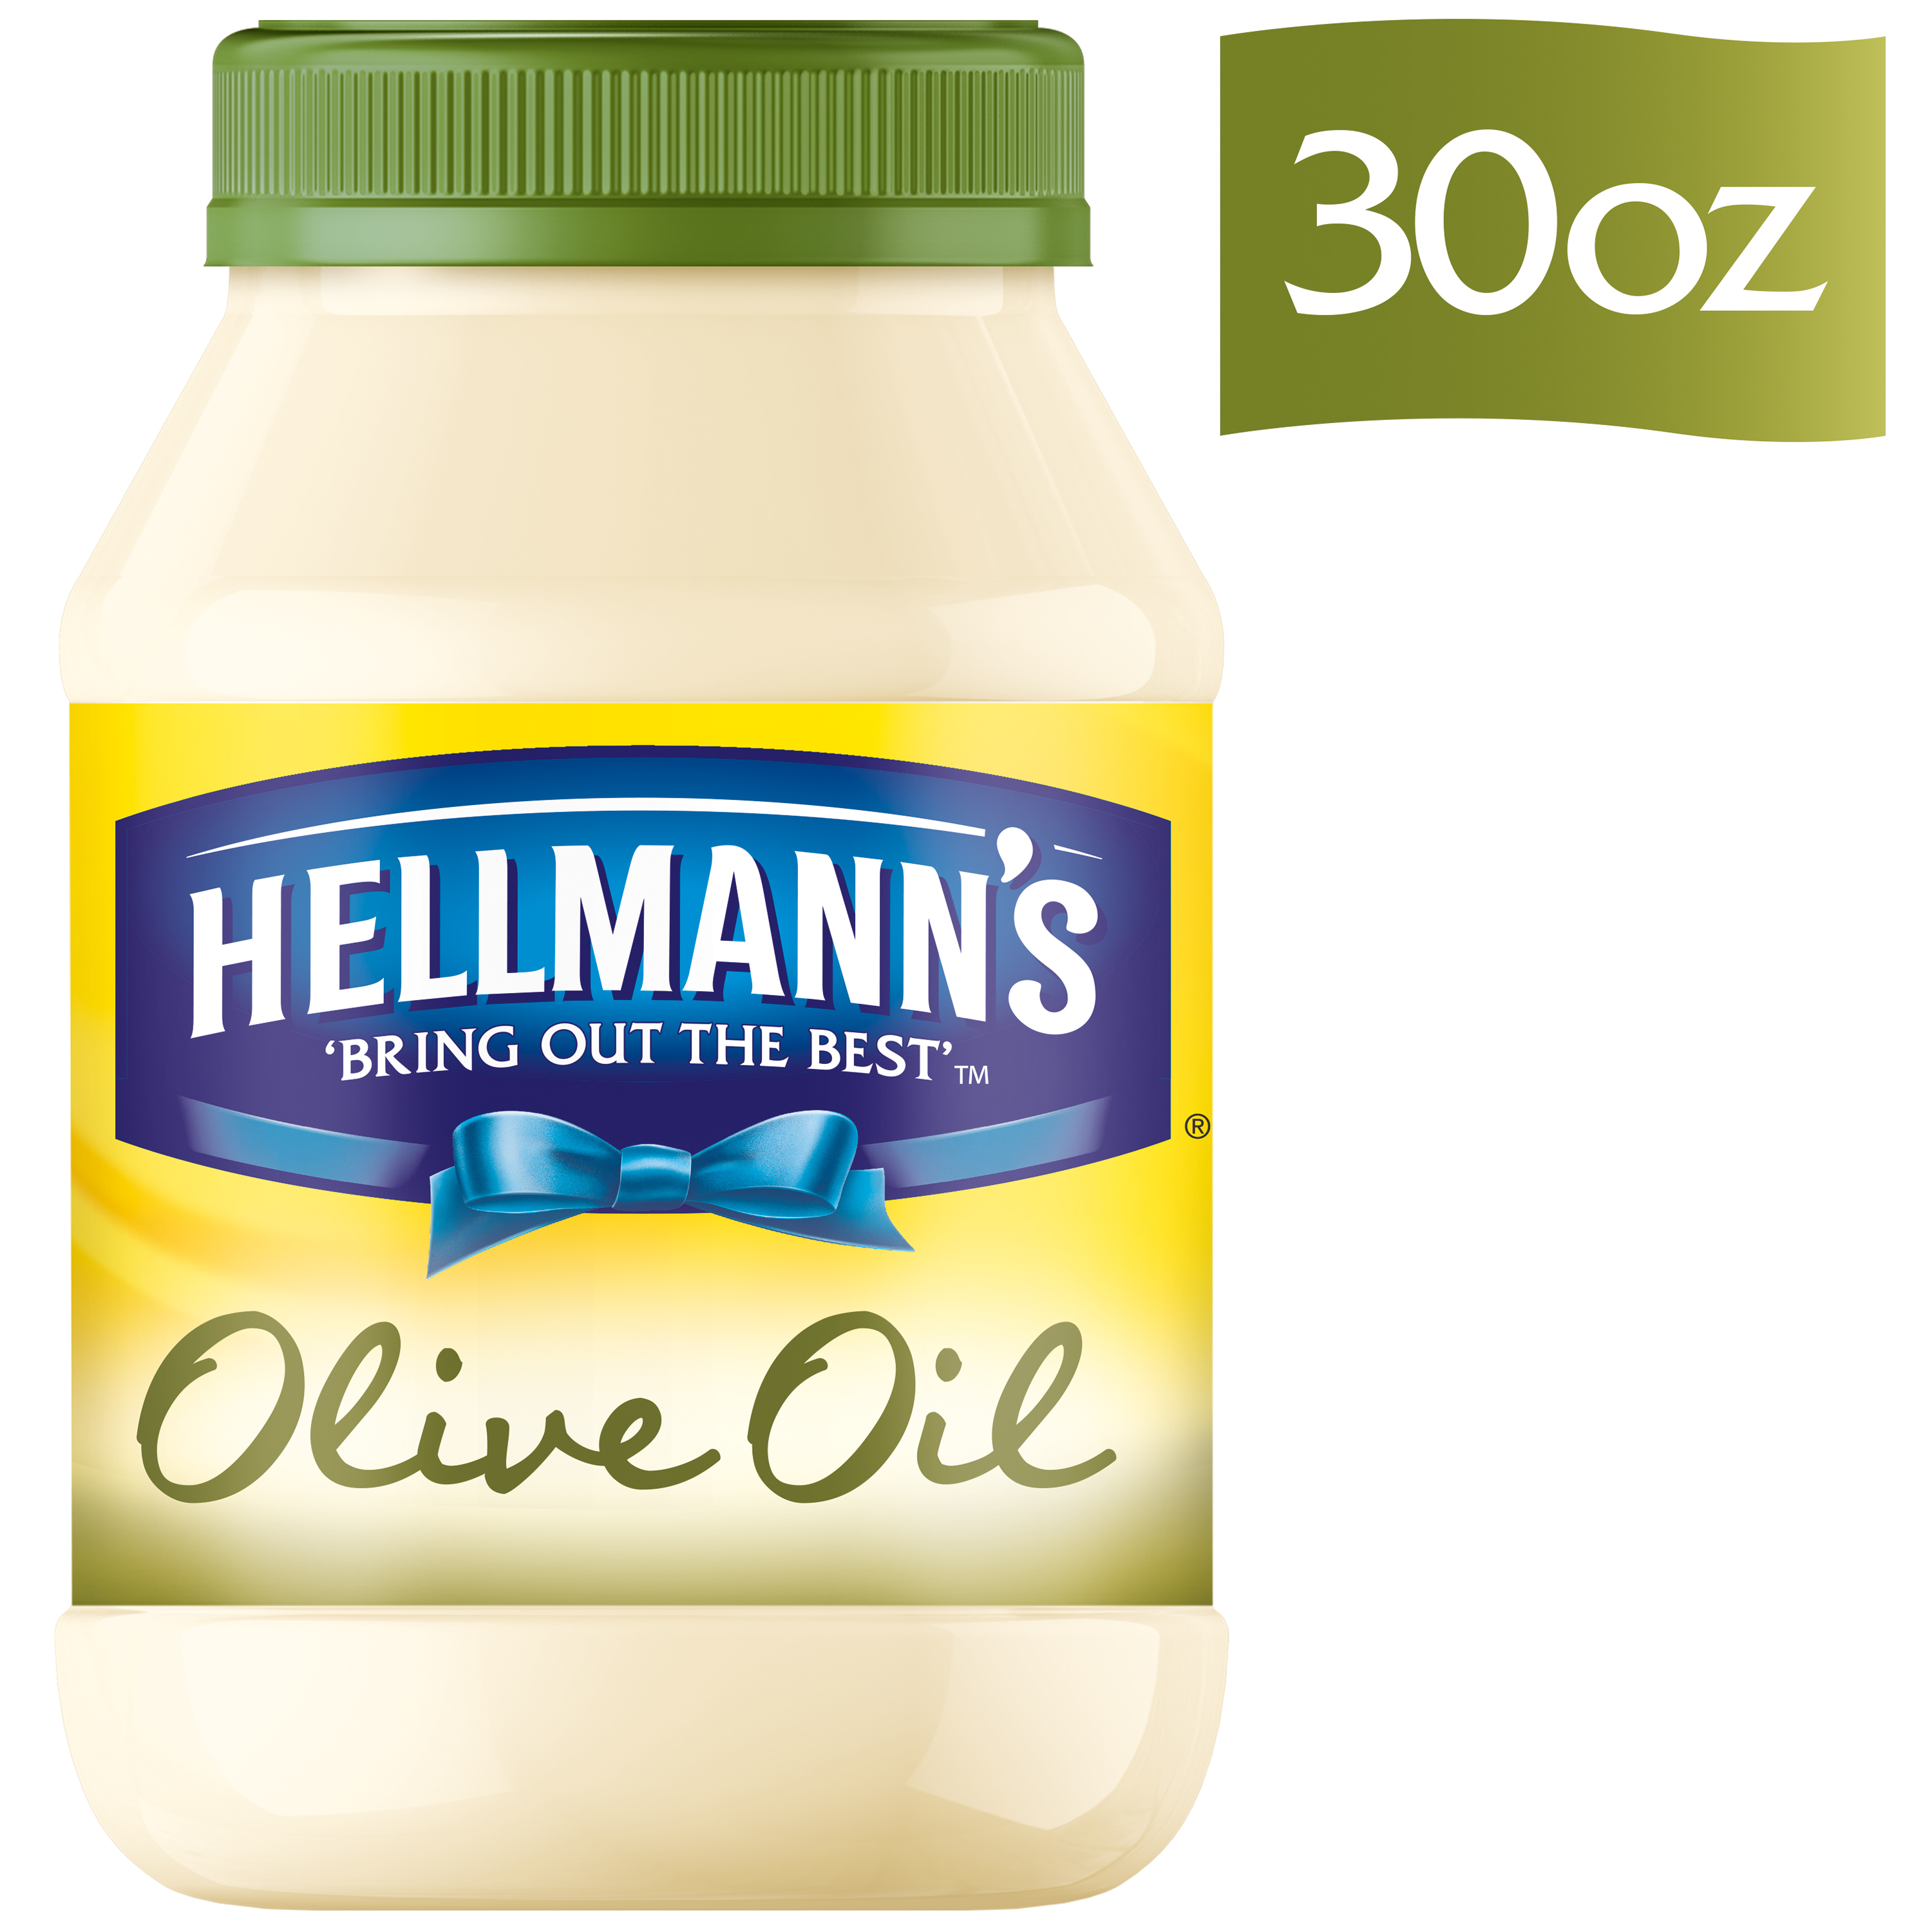 Hellmann's with Olive Oil Mayonnaise Dressing, 30 oz